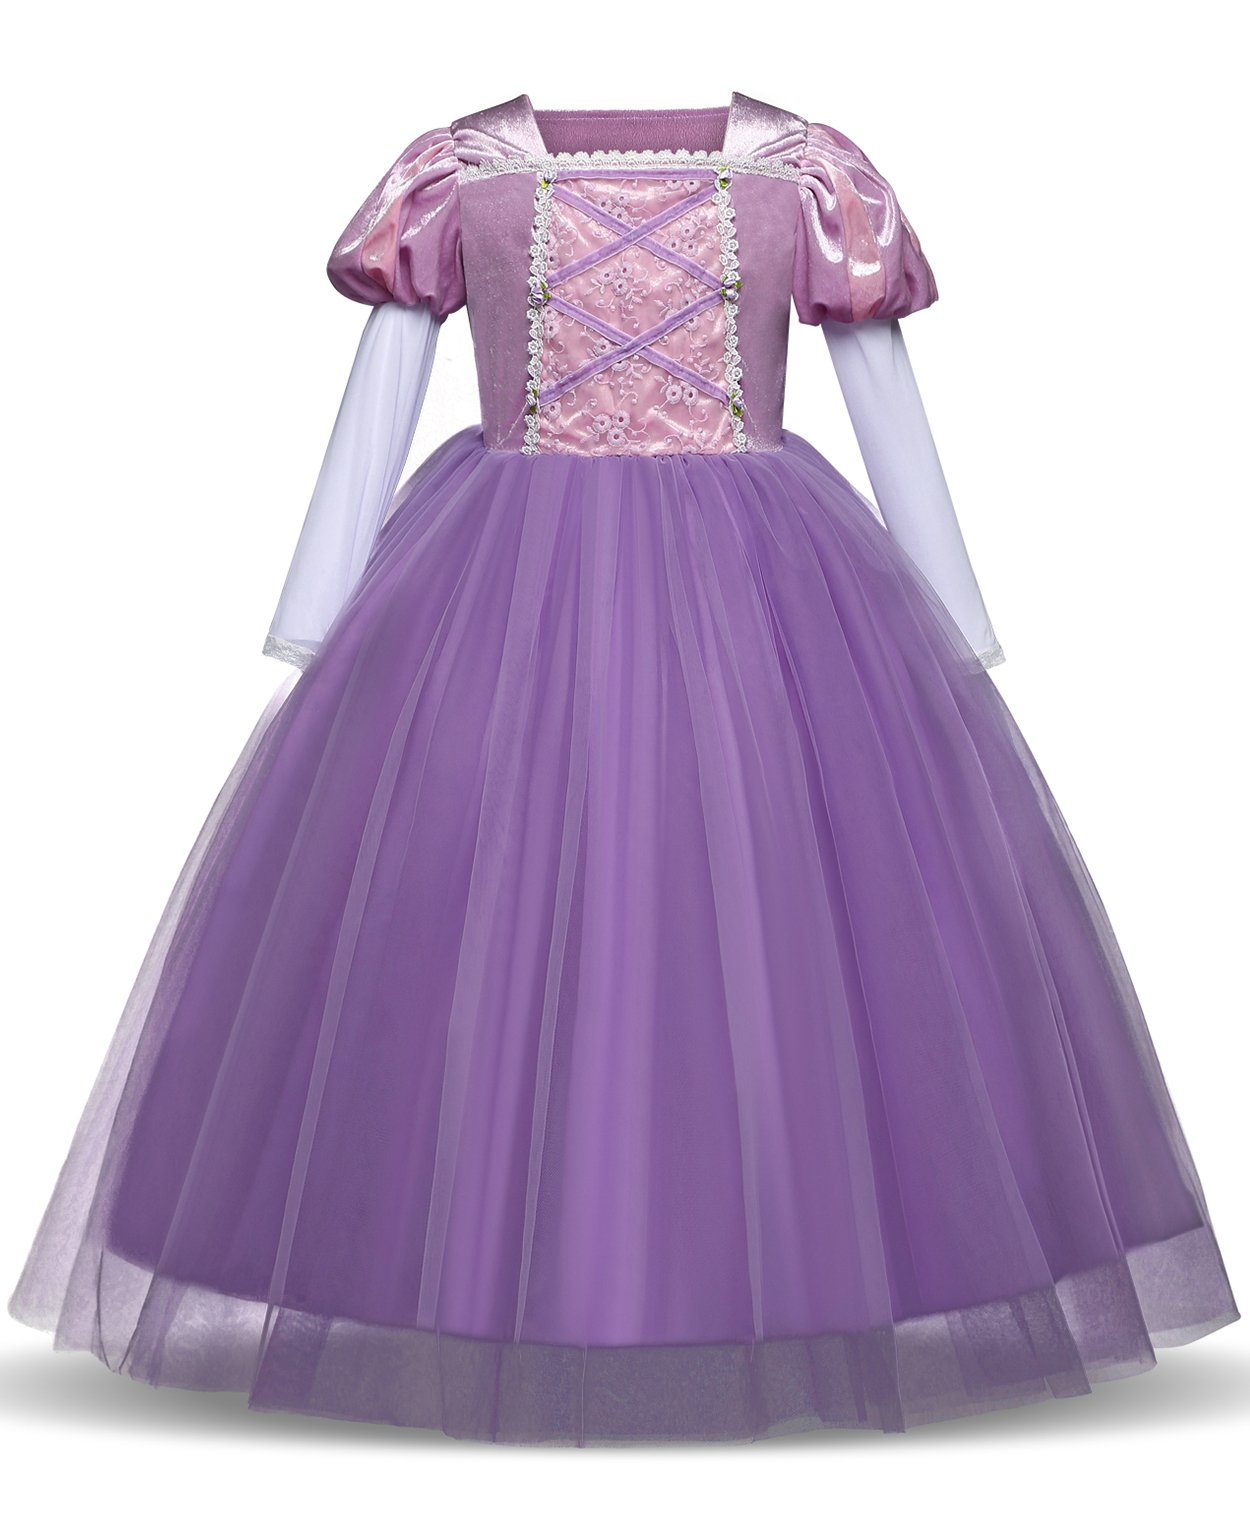 TTYAOVO Girl Chiffon Long Sleeve Costume Clothing Pageant Party Dress Size 6-7 Years Purple